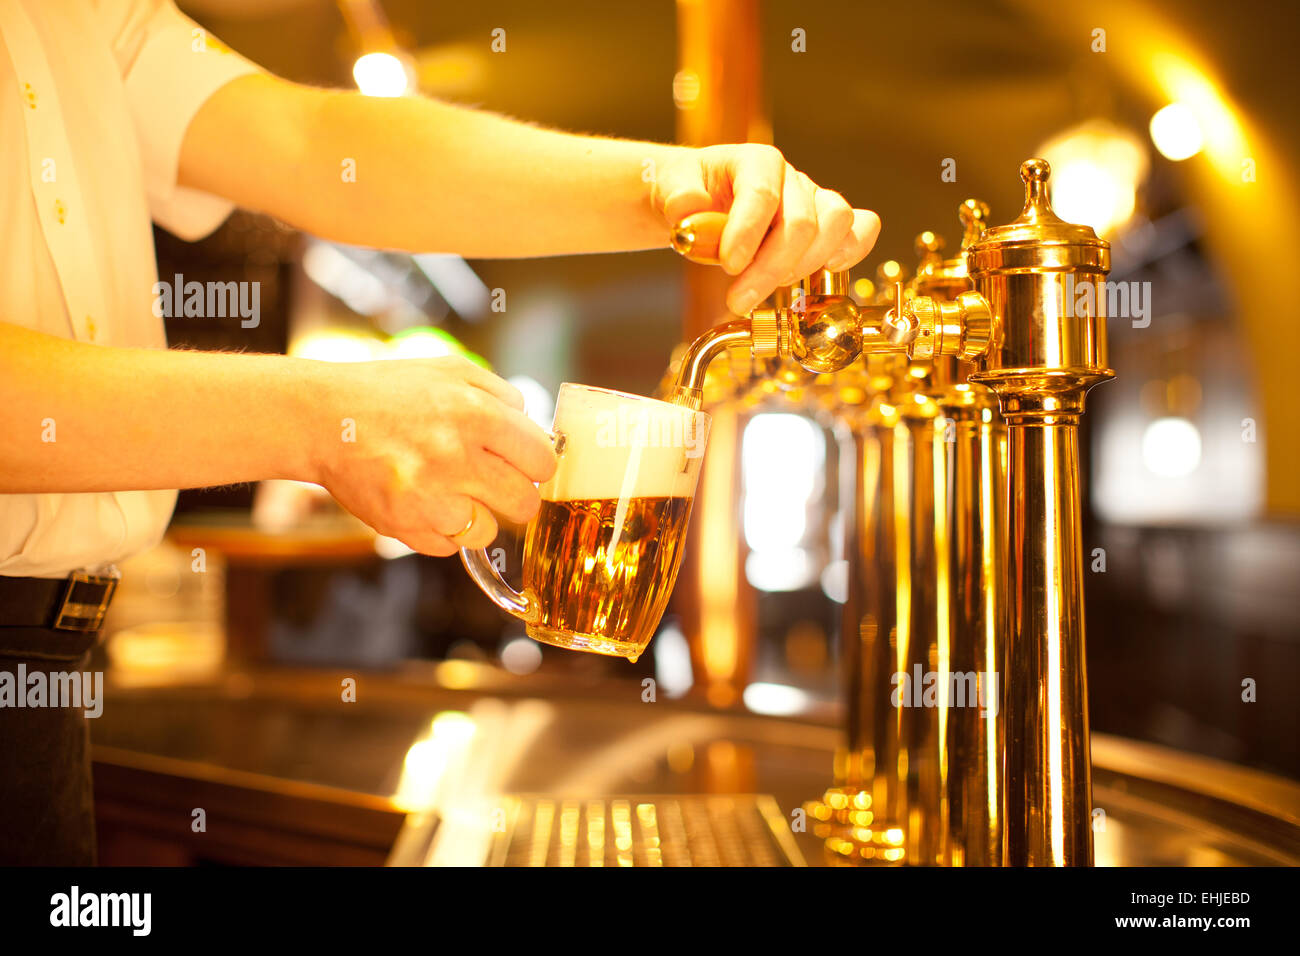 waiter is drafting a beer from a golden spigot - Stock Image